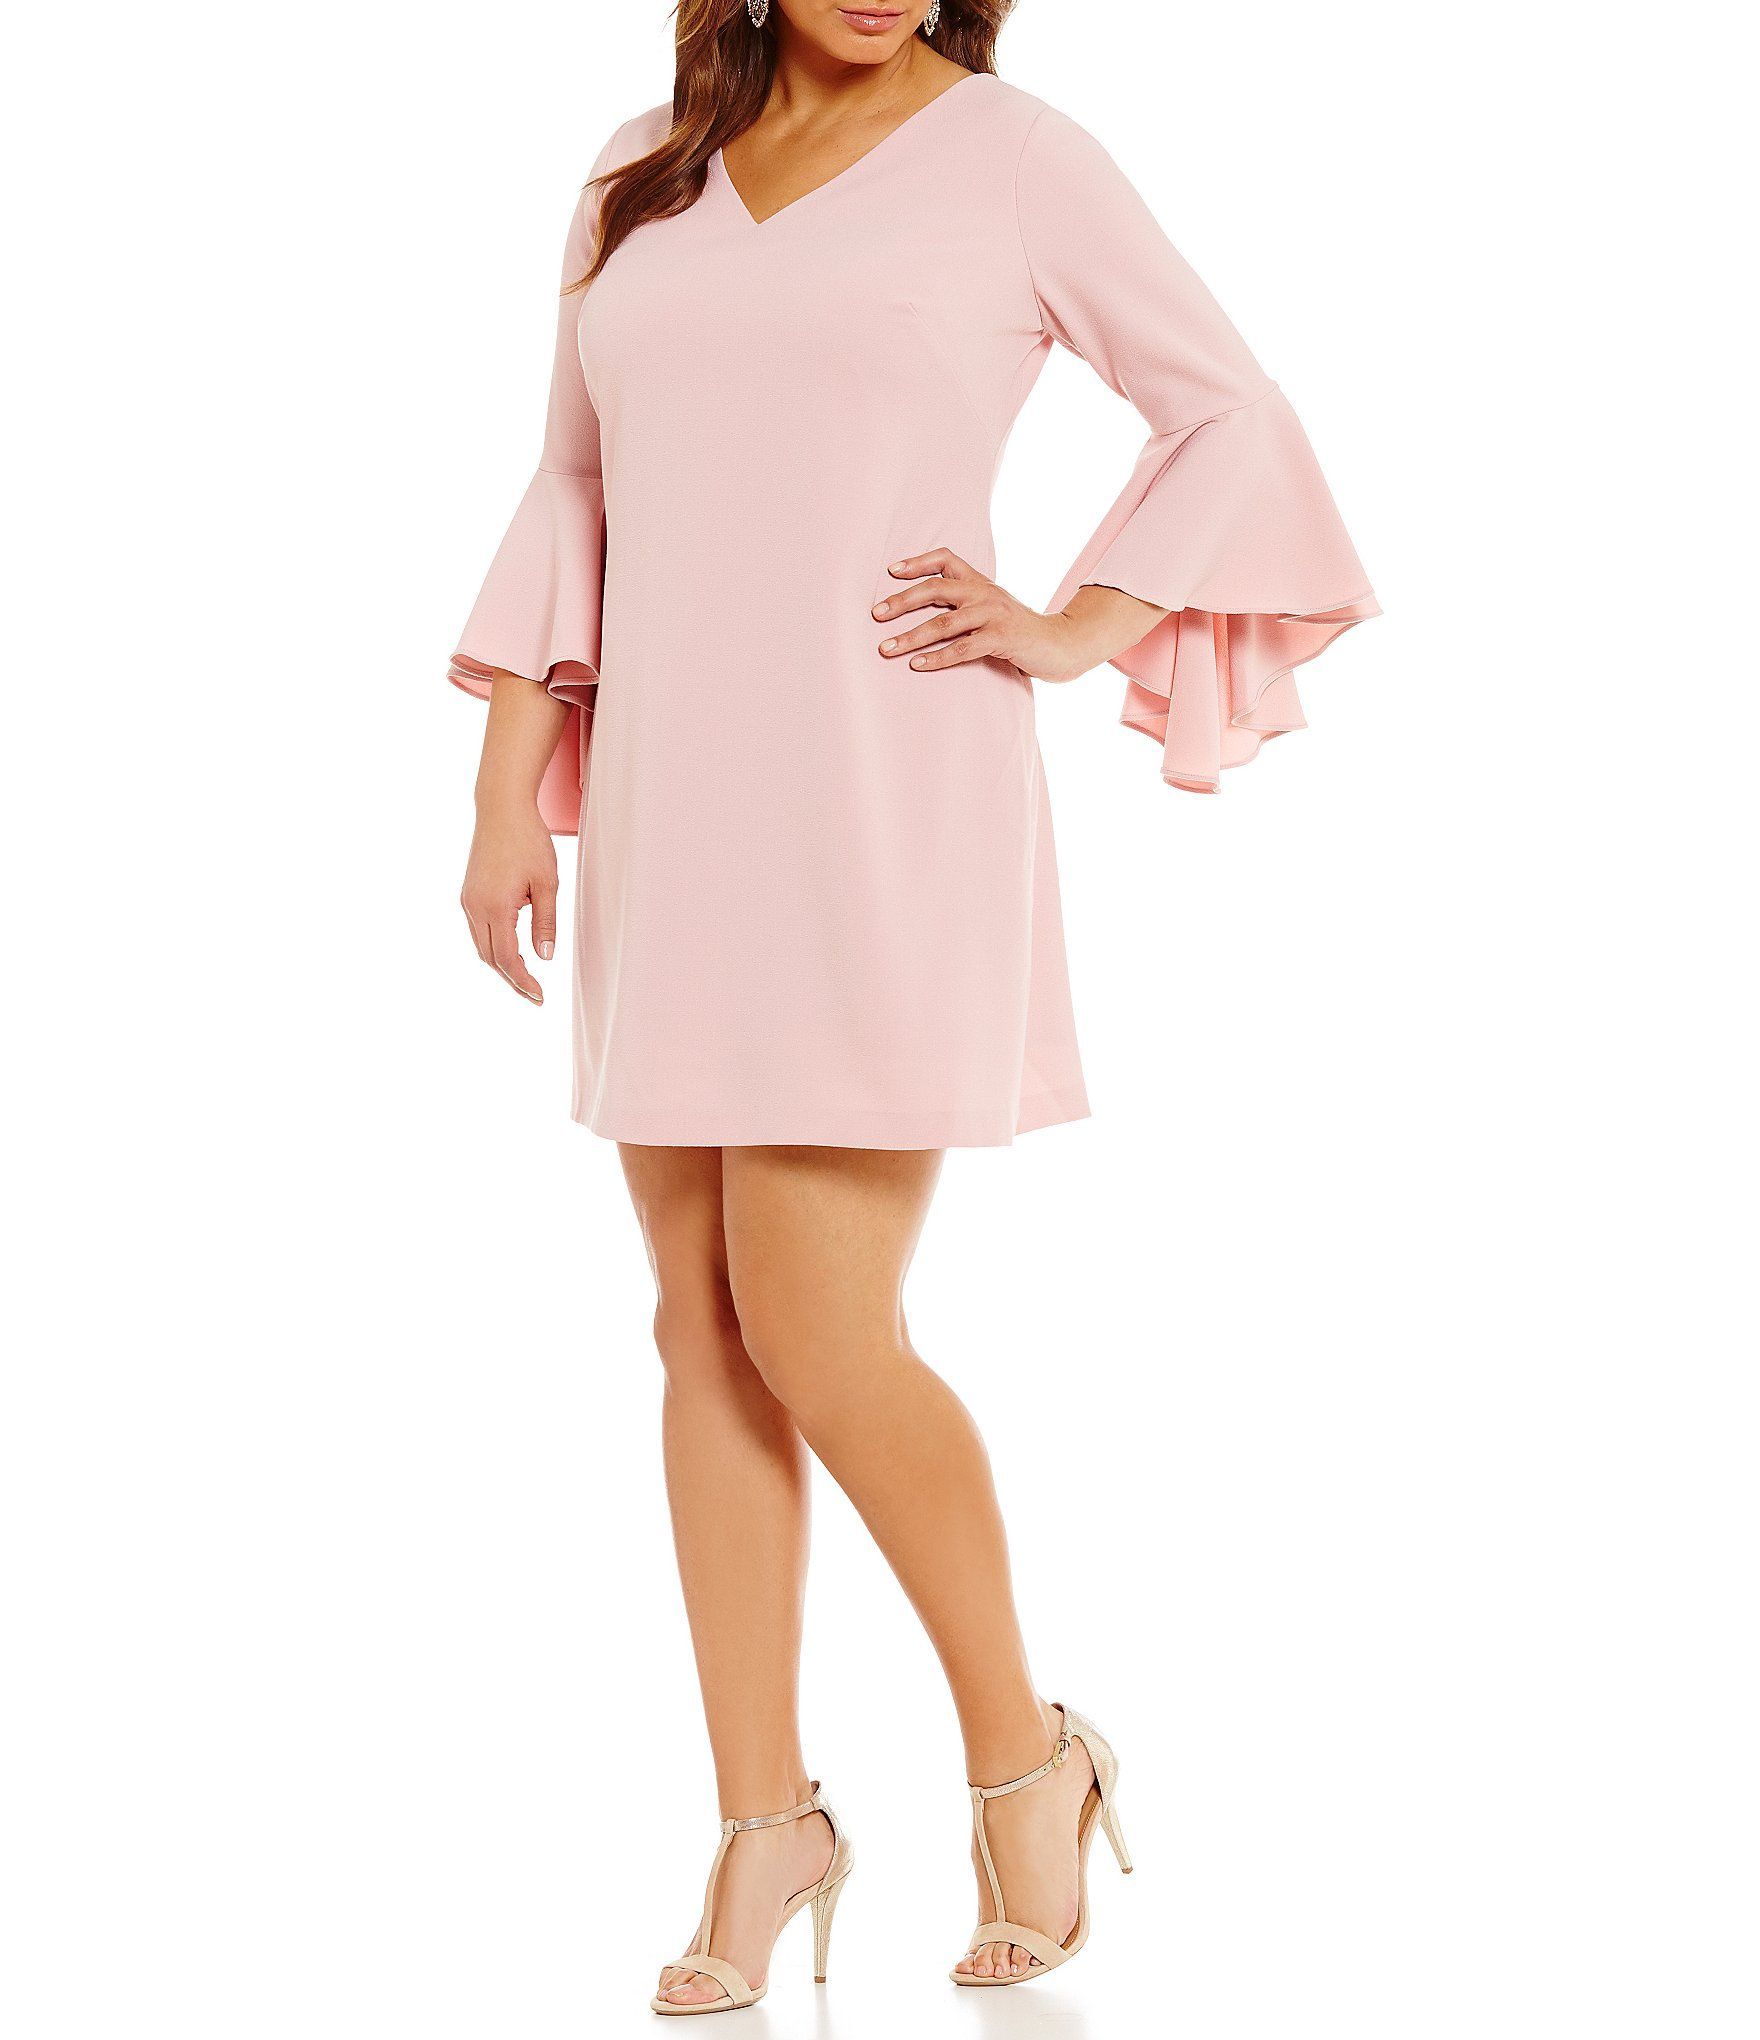 b121a1048d Shop for Eliza J Plus V-Neck Bell-Sleeve Dress at Dillards.com. Visit  Dillards.com to find clothing, accessories, shoes, cosmetics & more.